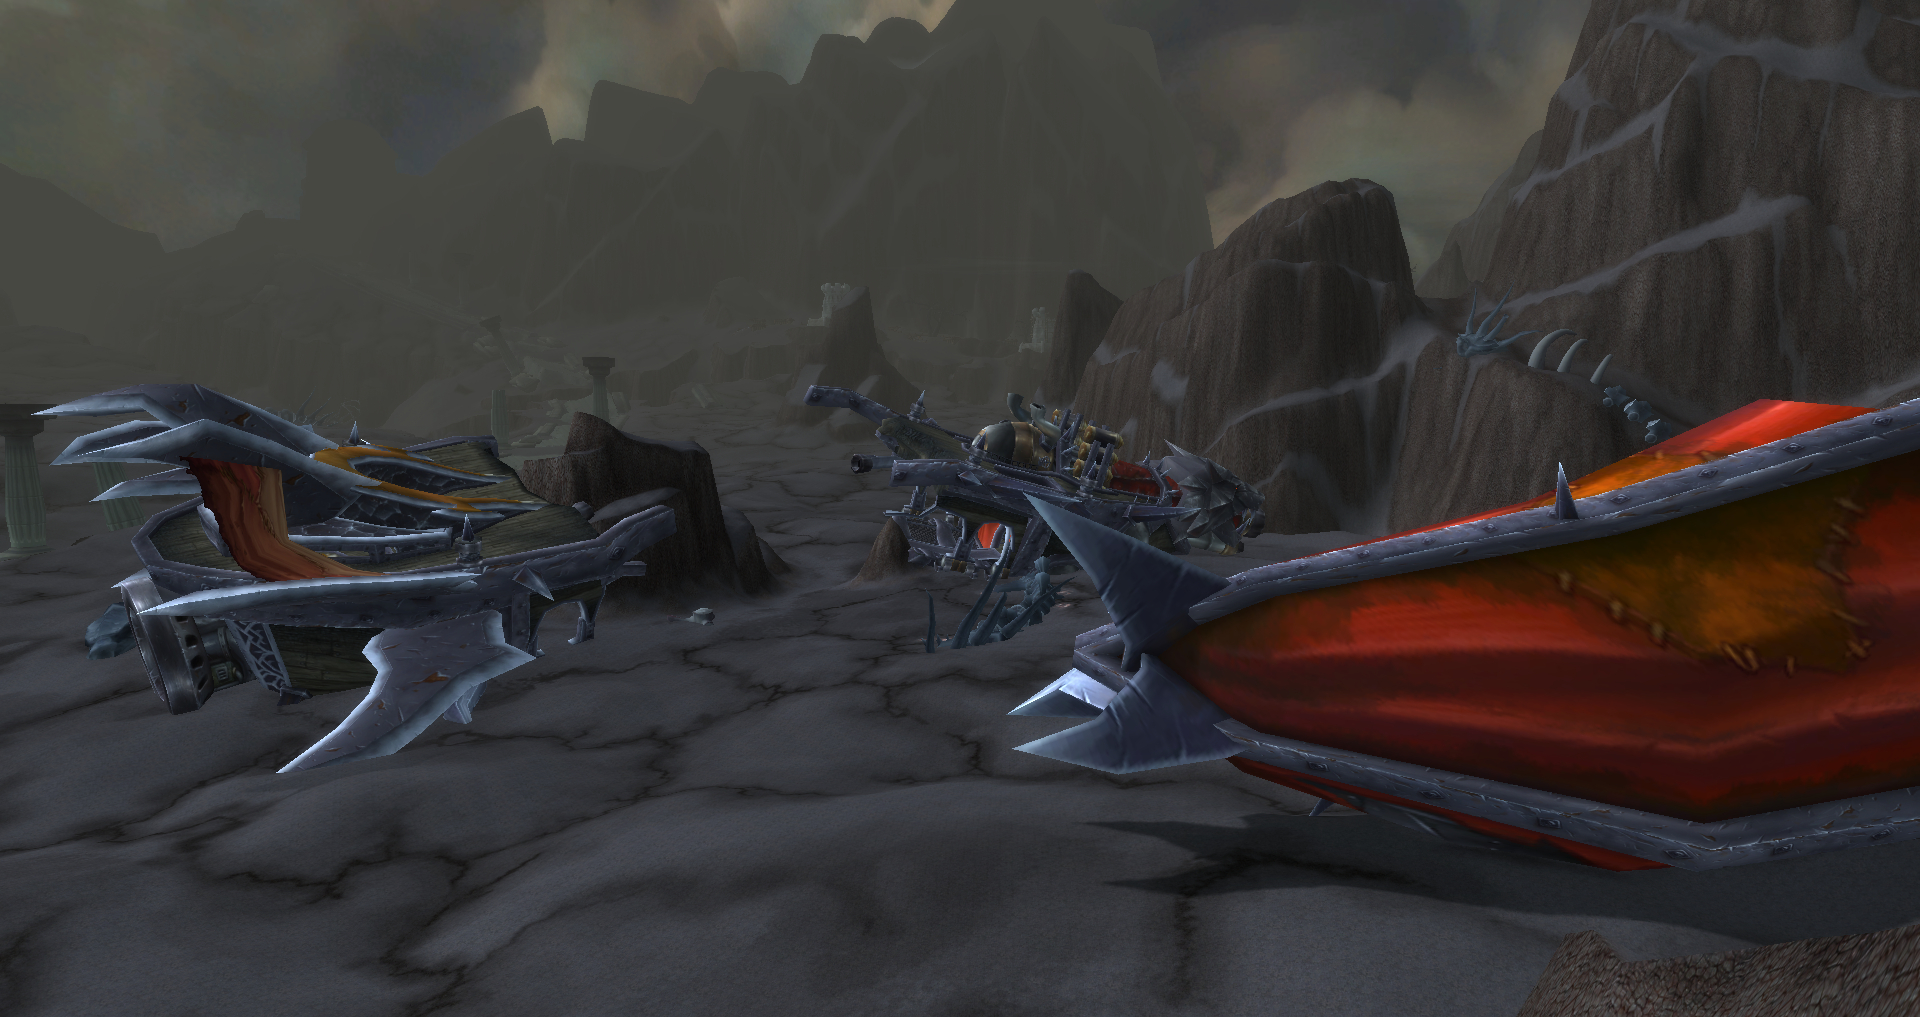 horde gunship wreckage